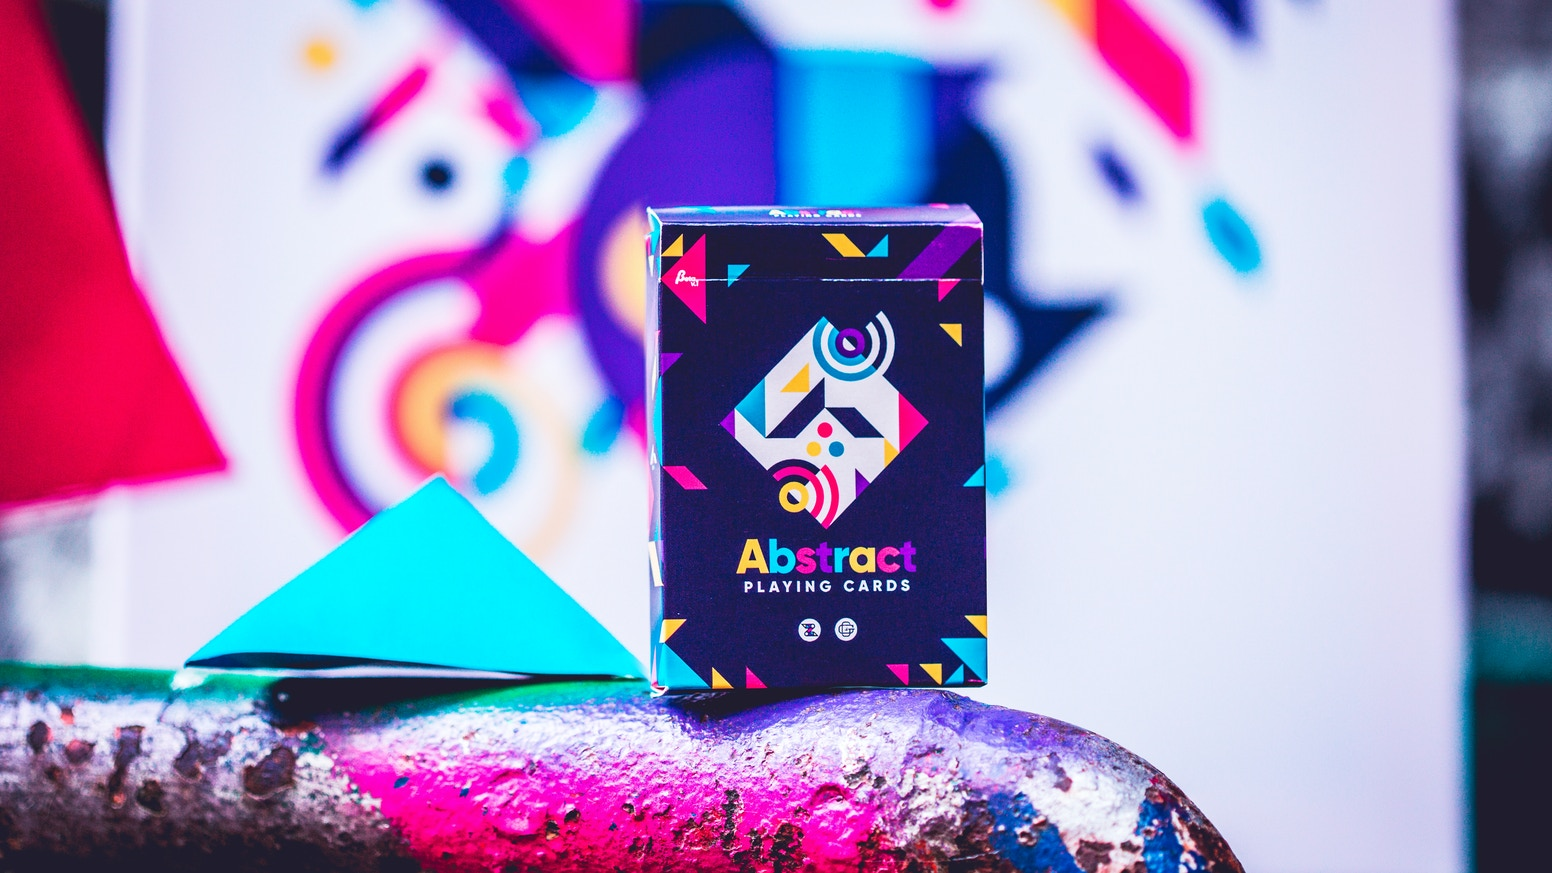 A fresh, colorful and ABSTRACT designer's deck of playing cards made for cardists, occasional magicians, and any card enthusiast!